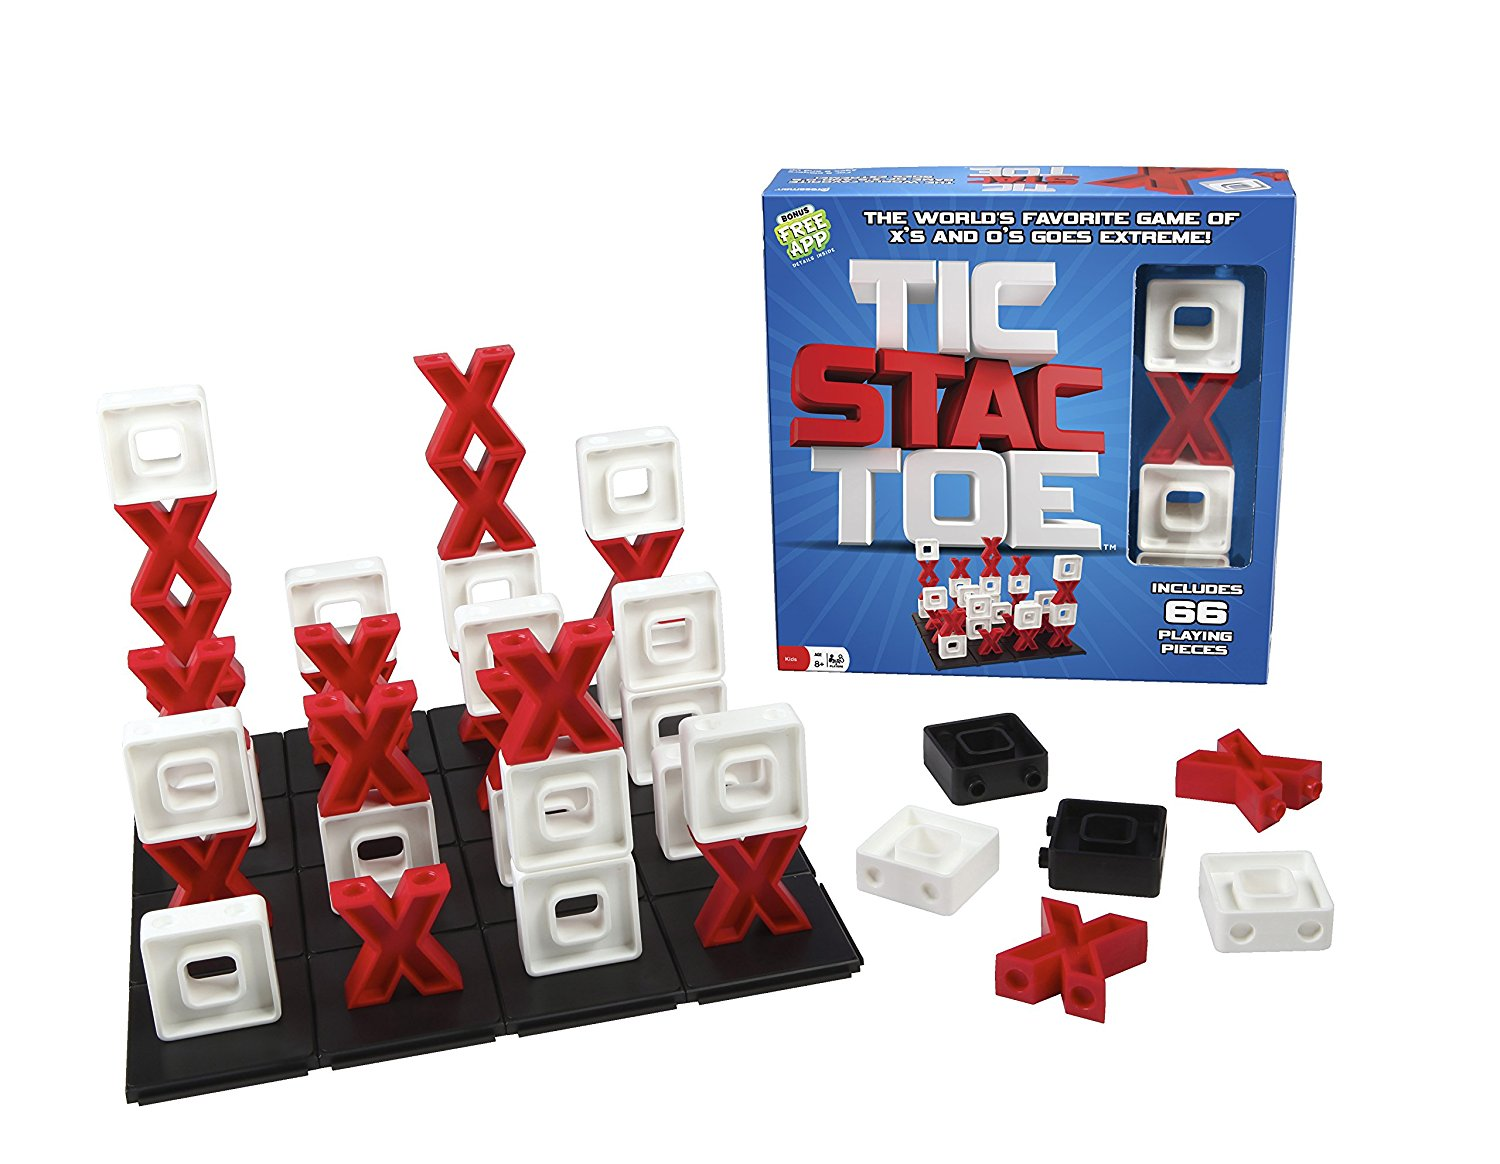 Tic Stac Toe -- 3-D Version of Tic Tac Toe -- A Great Strategy Game, Learn to play in 30 seconds By Pressman... by